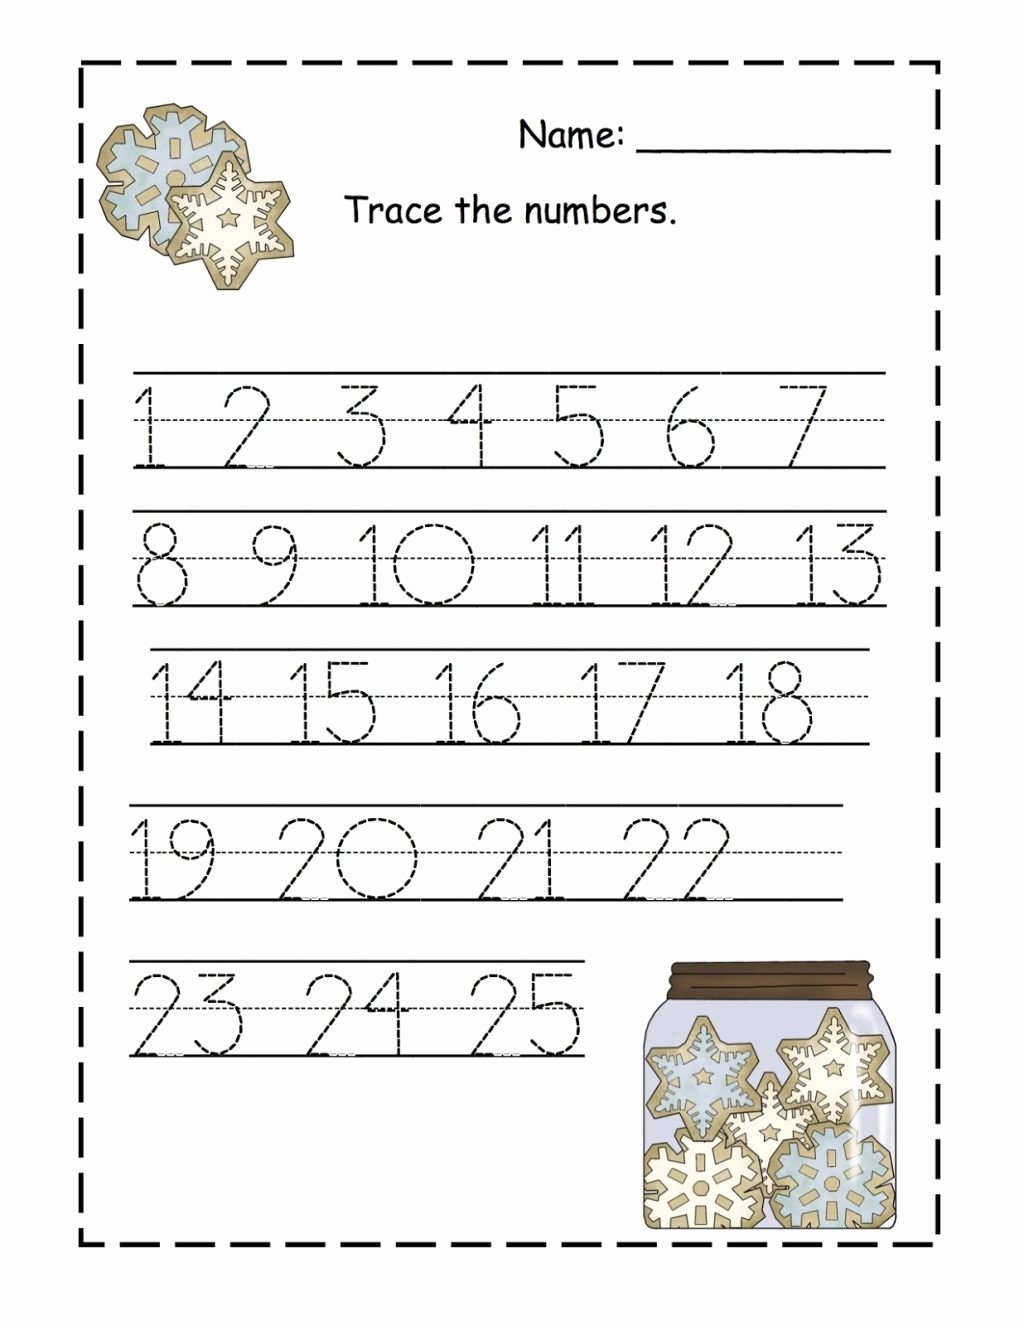 Printable Worksheets for Preschoolers to Write their Name Ideas Worksheet Preschoolts Free Printable Number Frozen